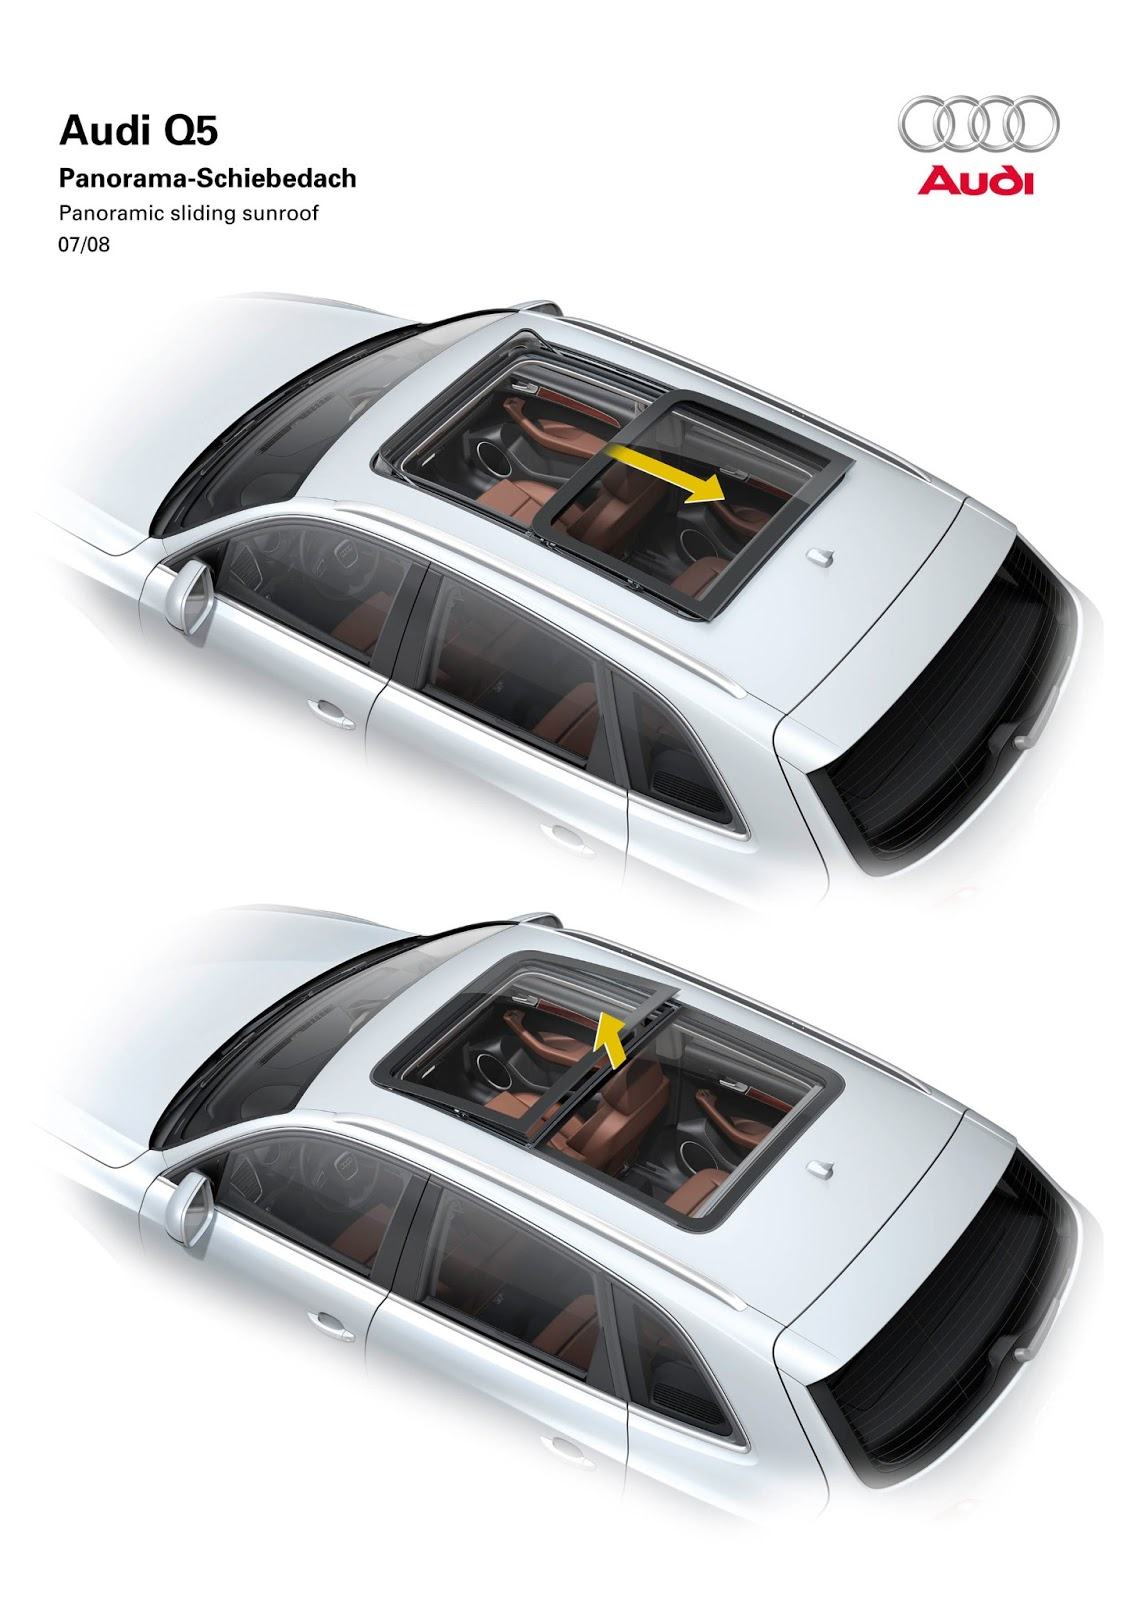 audi q5 specifications 2008 pictures infinity cars 2 u. Black Bedroom Furniture Sets. Home Design Ideas